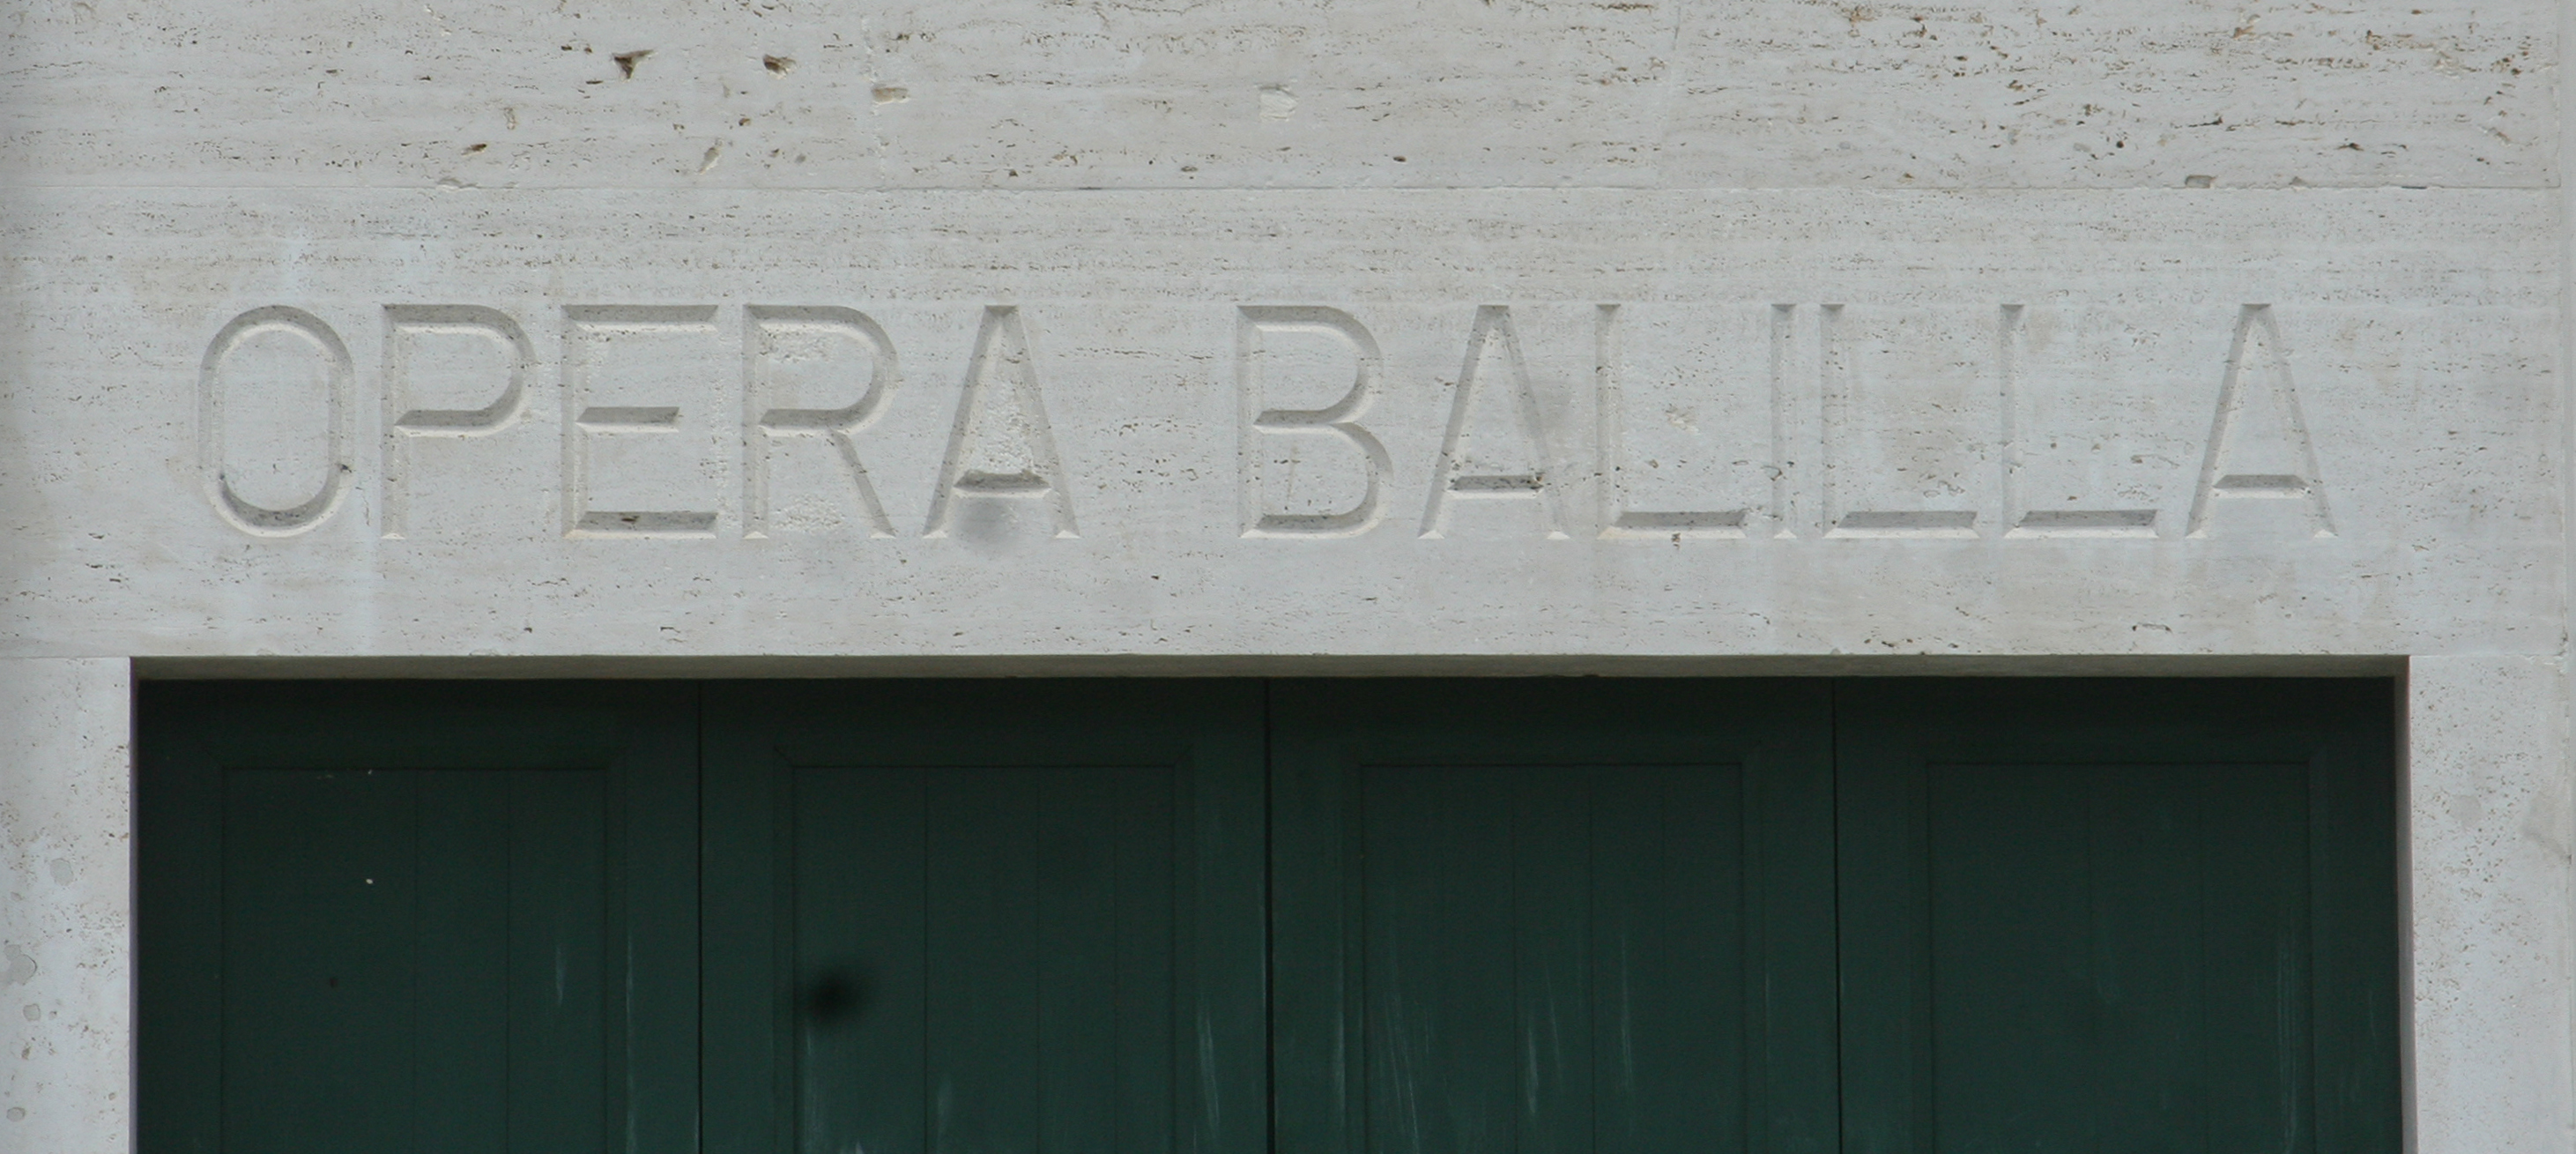 Detail of lettering on the facade of the Opera Balilla (Latina). Latina, established in 1932, was originally named Littoria.